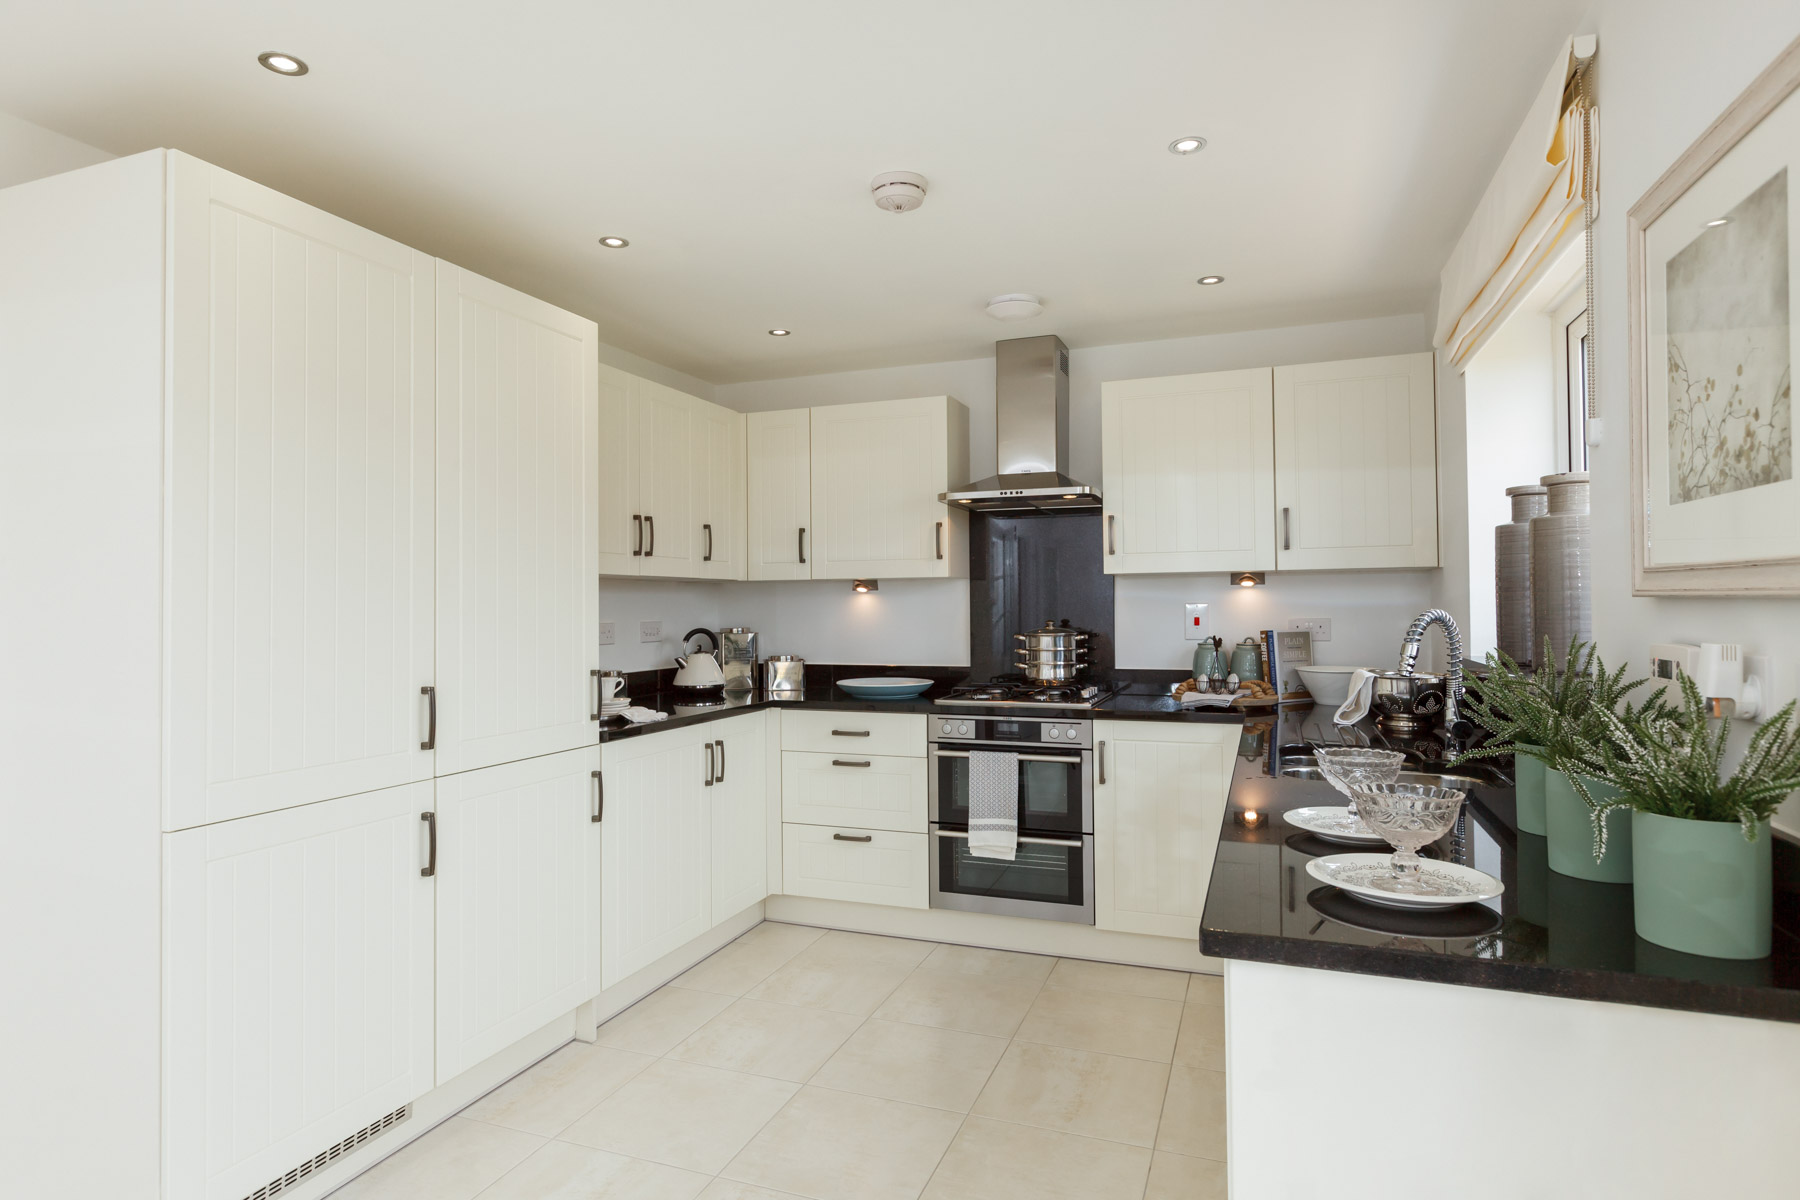 Burntwood Manor - Downham - kitchen